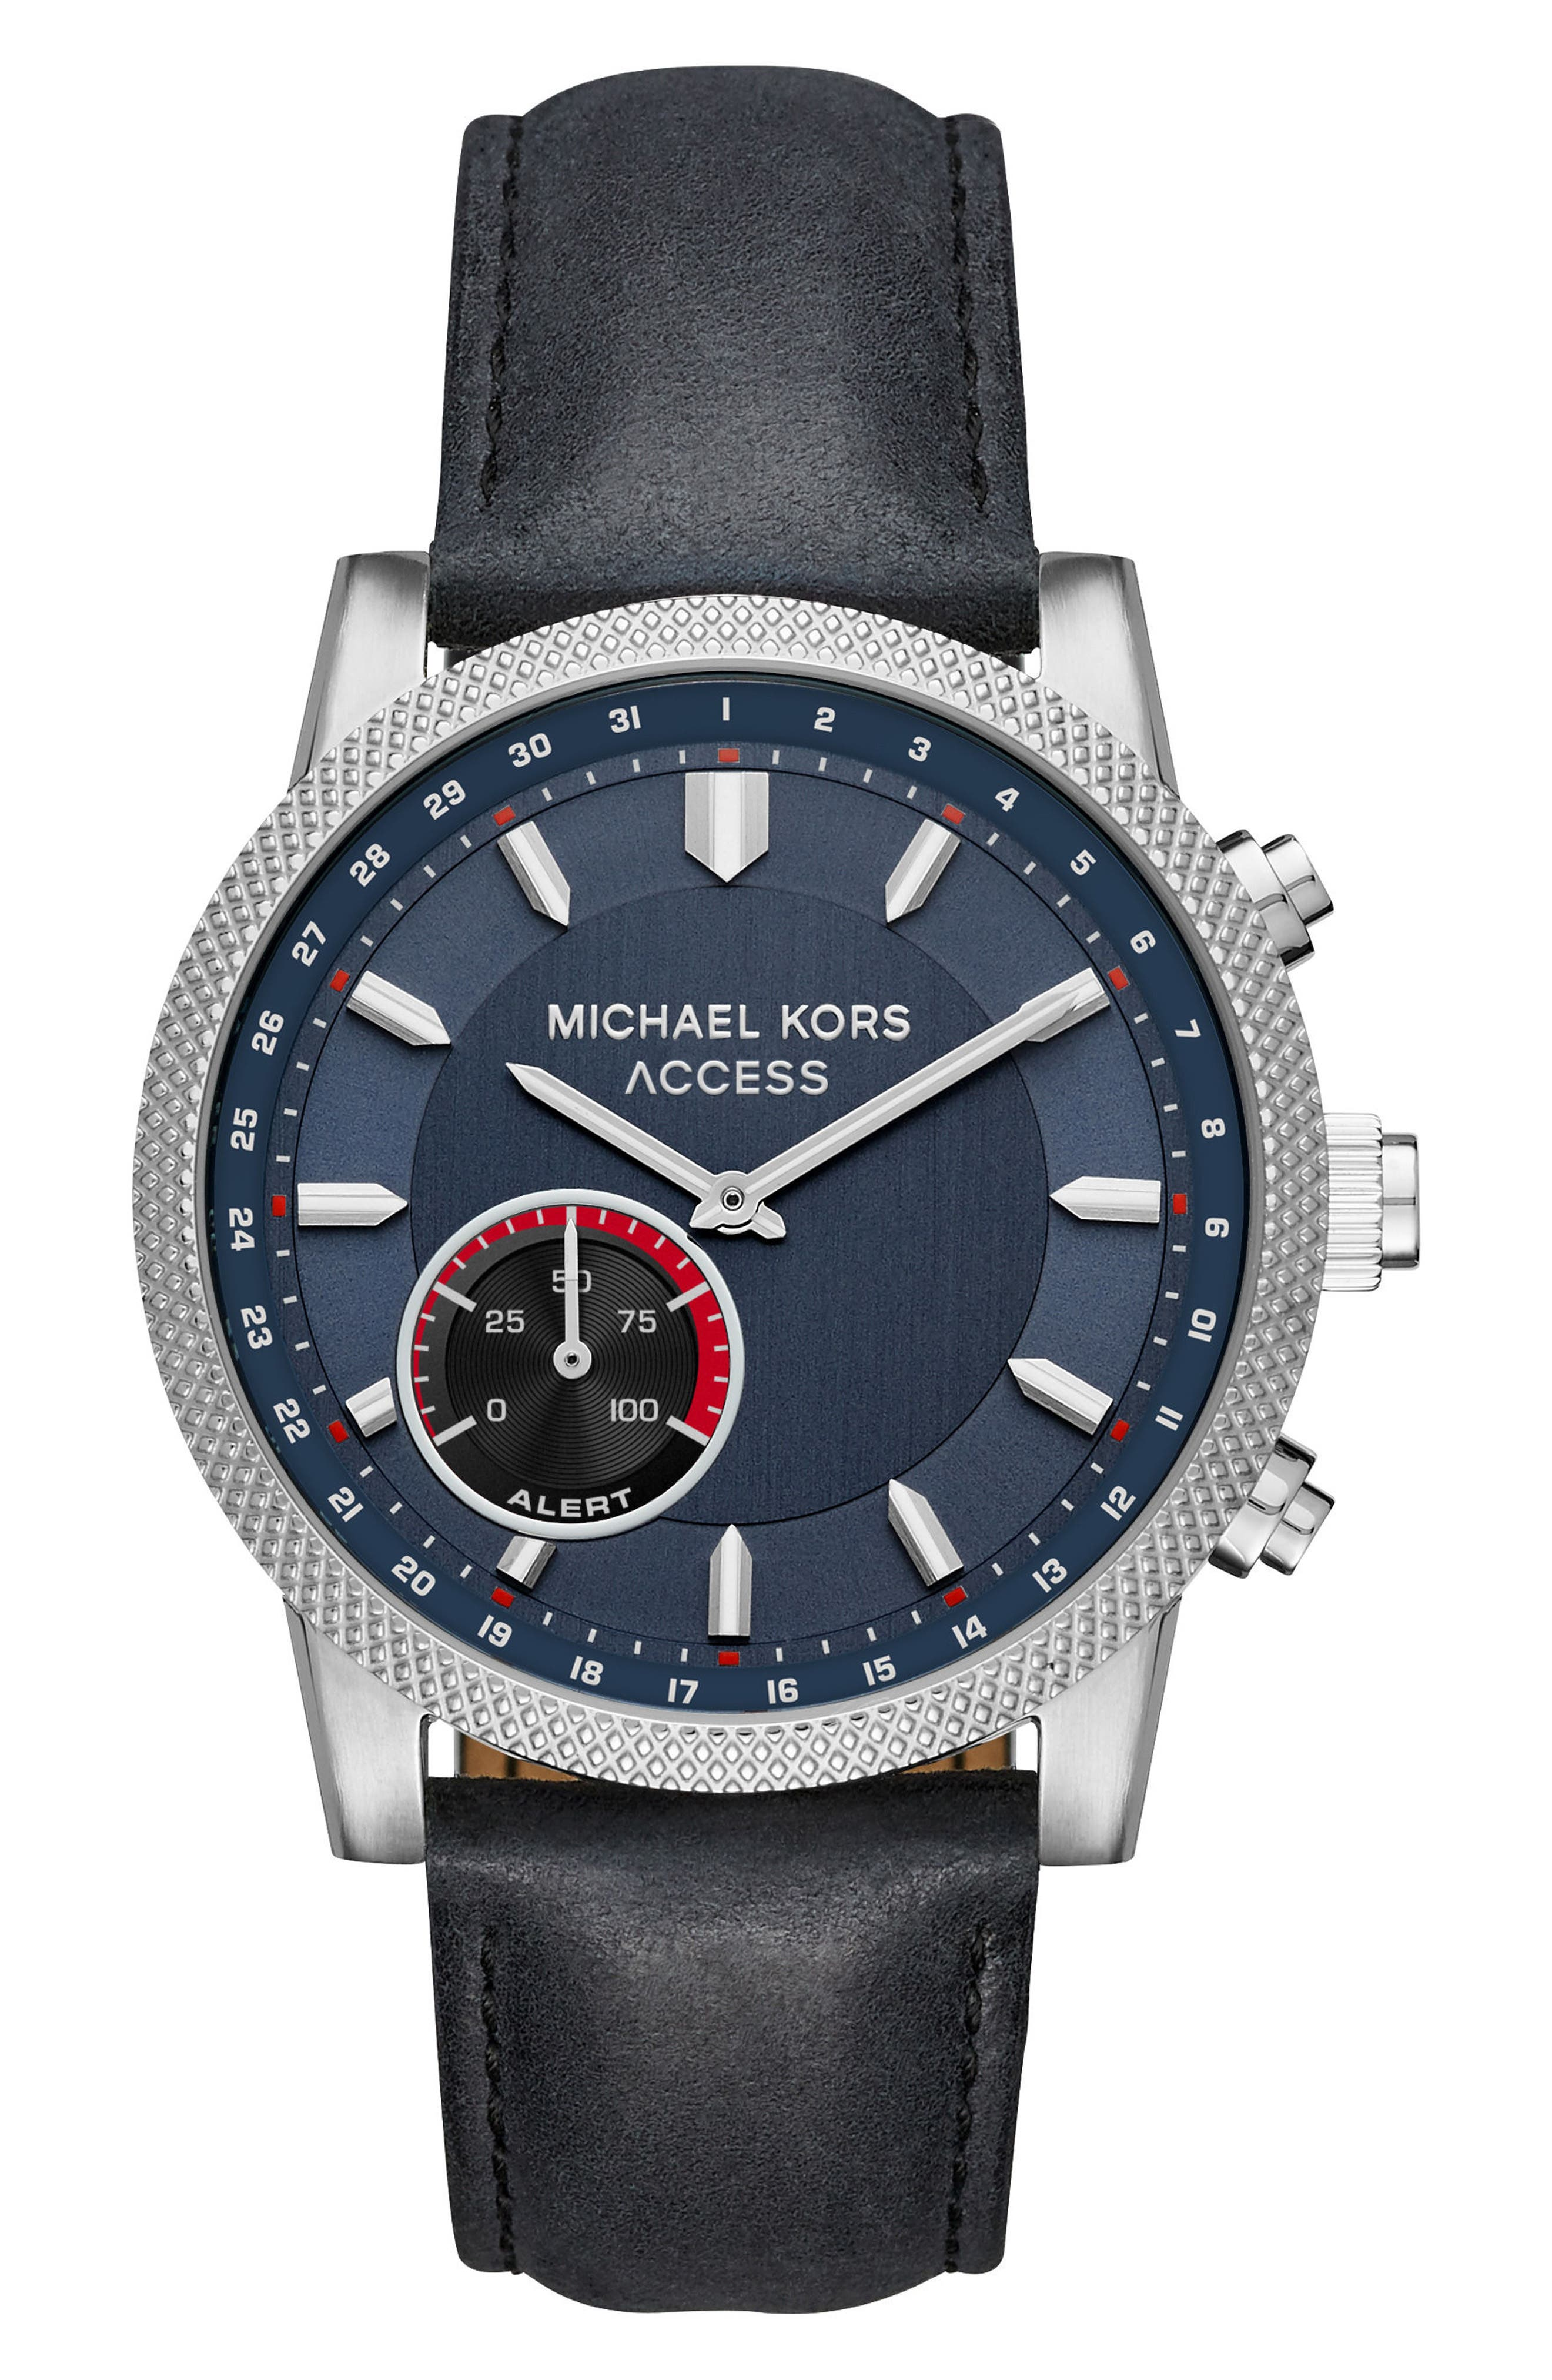 Main Image - Michael Kors Access Scout Hybrid Leather Strap Smart Watch, 43mm